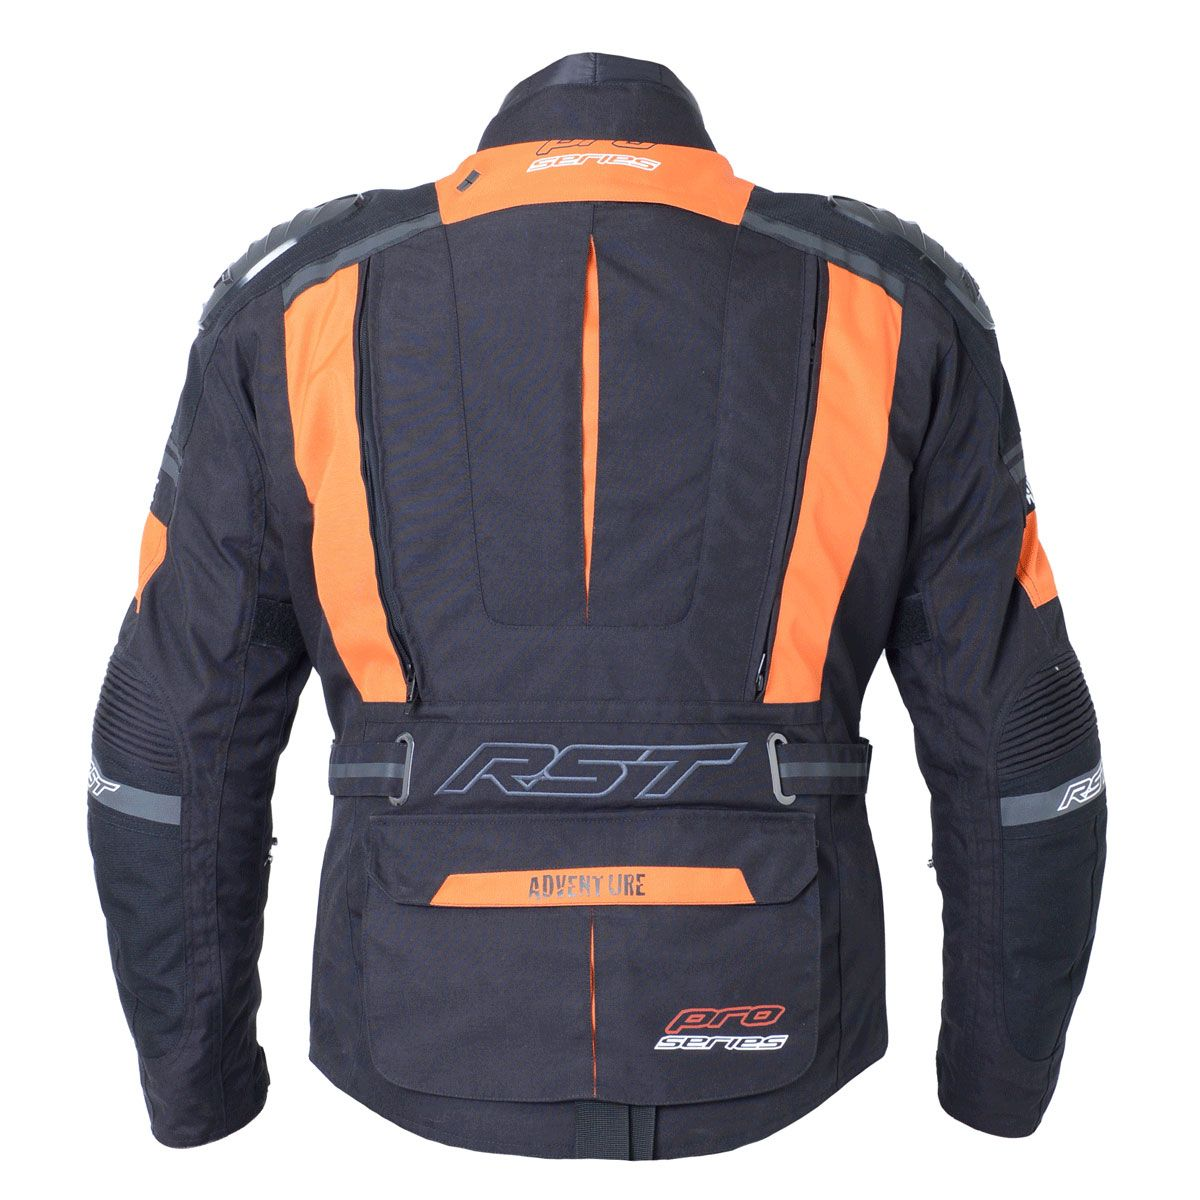 RST Pro Series Adventure III Textile Motorcycle Jacket Orange / Black